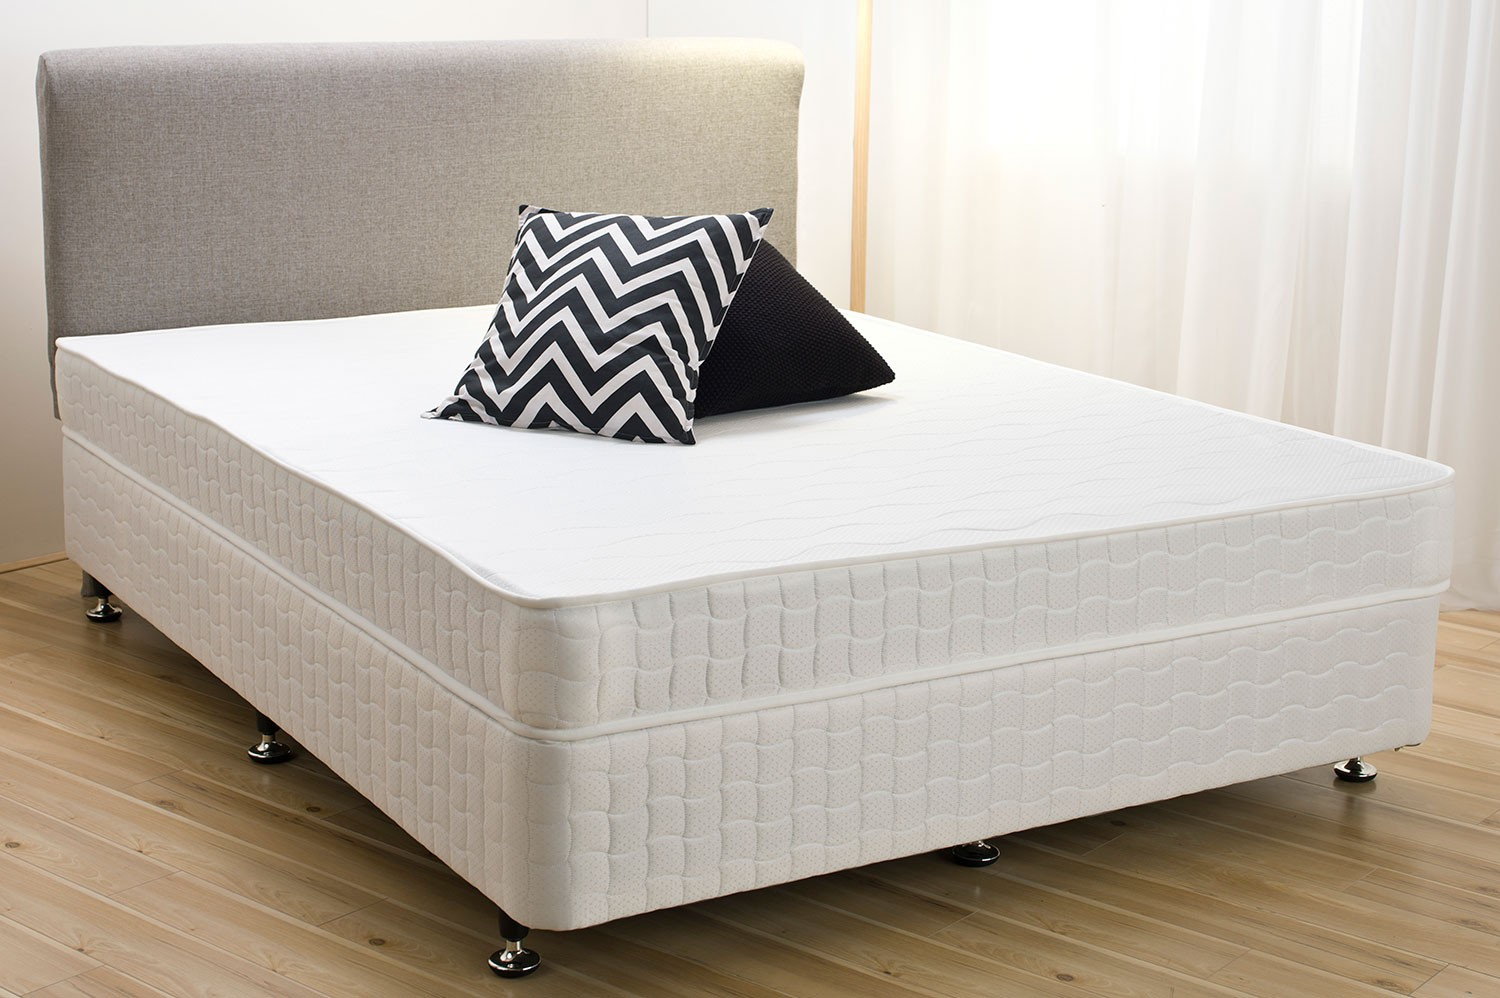 Hovag Mattress Top 10 Mattress Brands In Malaysia